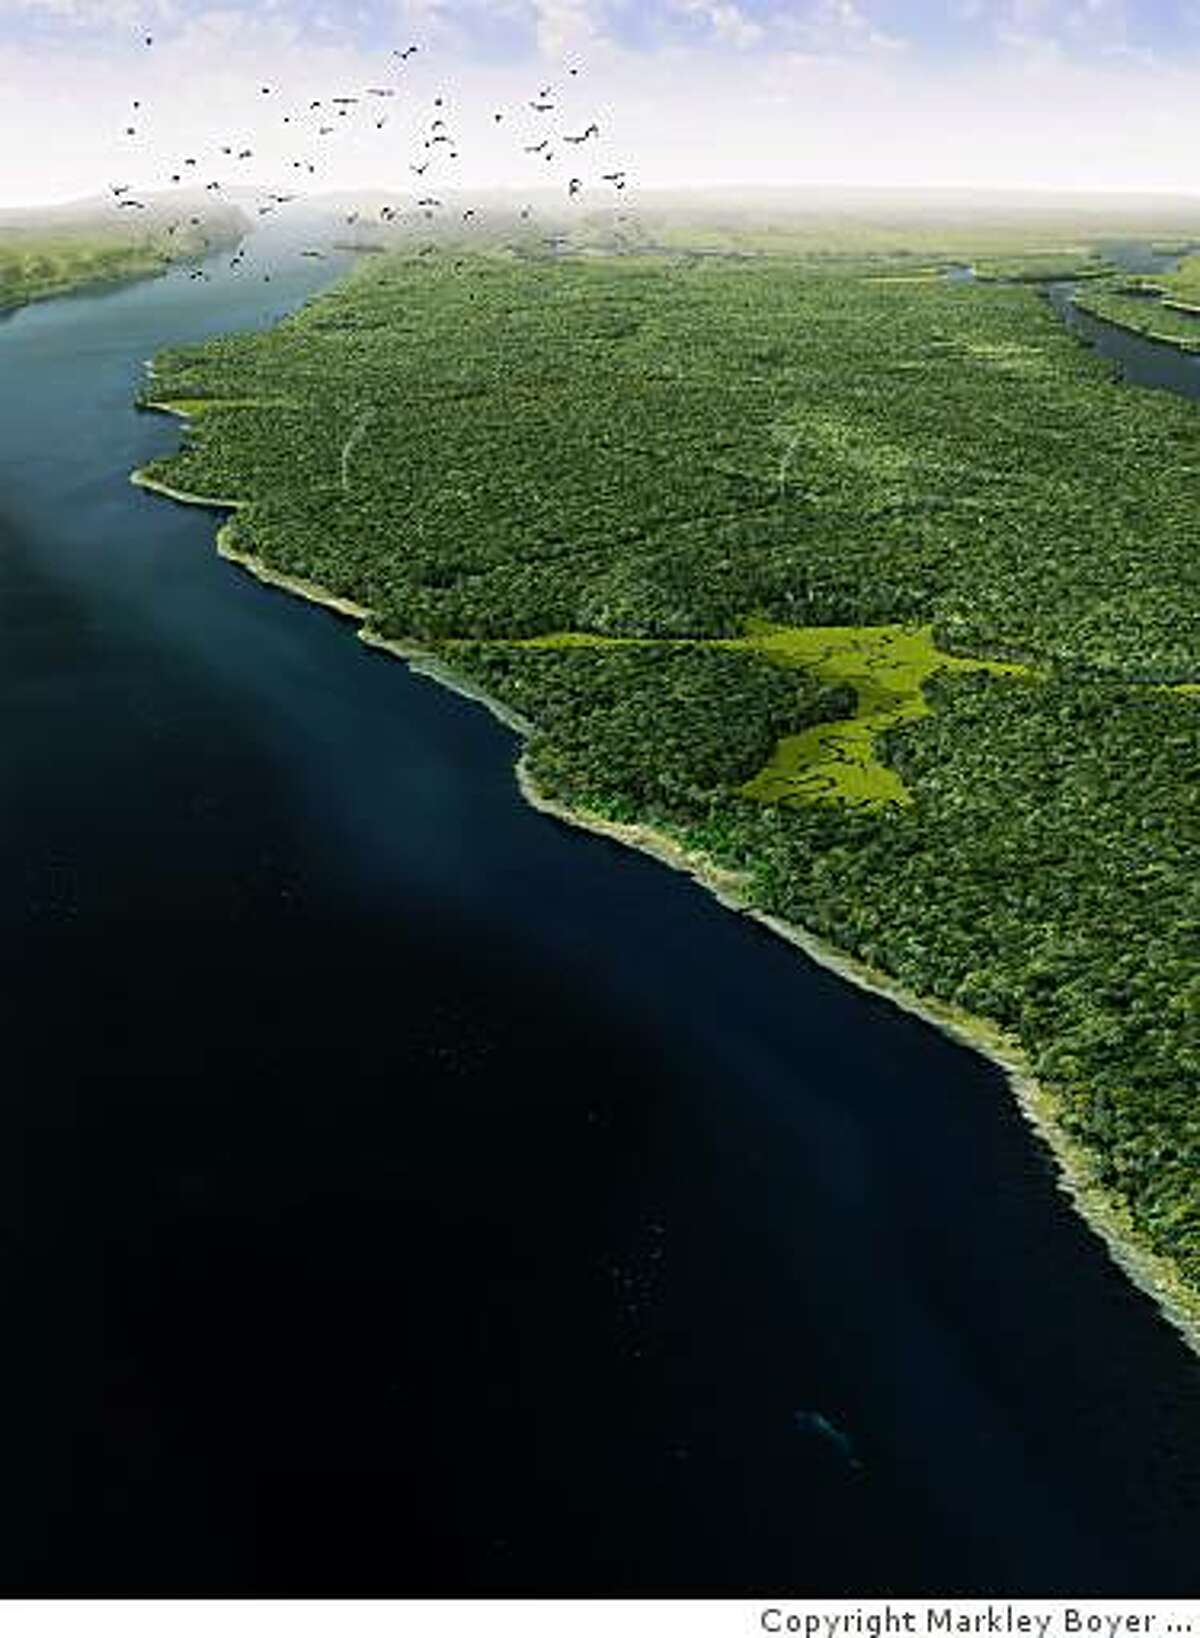 The Hudson River estuary shaped the sandy shore of Mannahatta. Smoke from fires indicates Lenape camps.